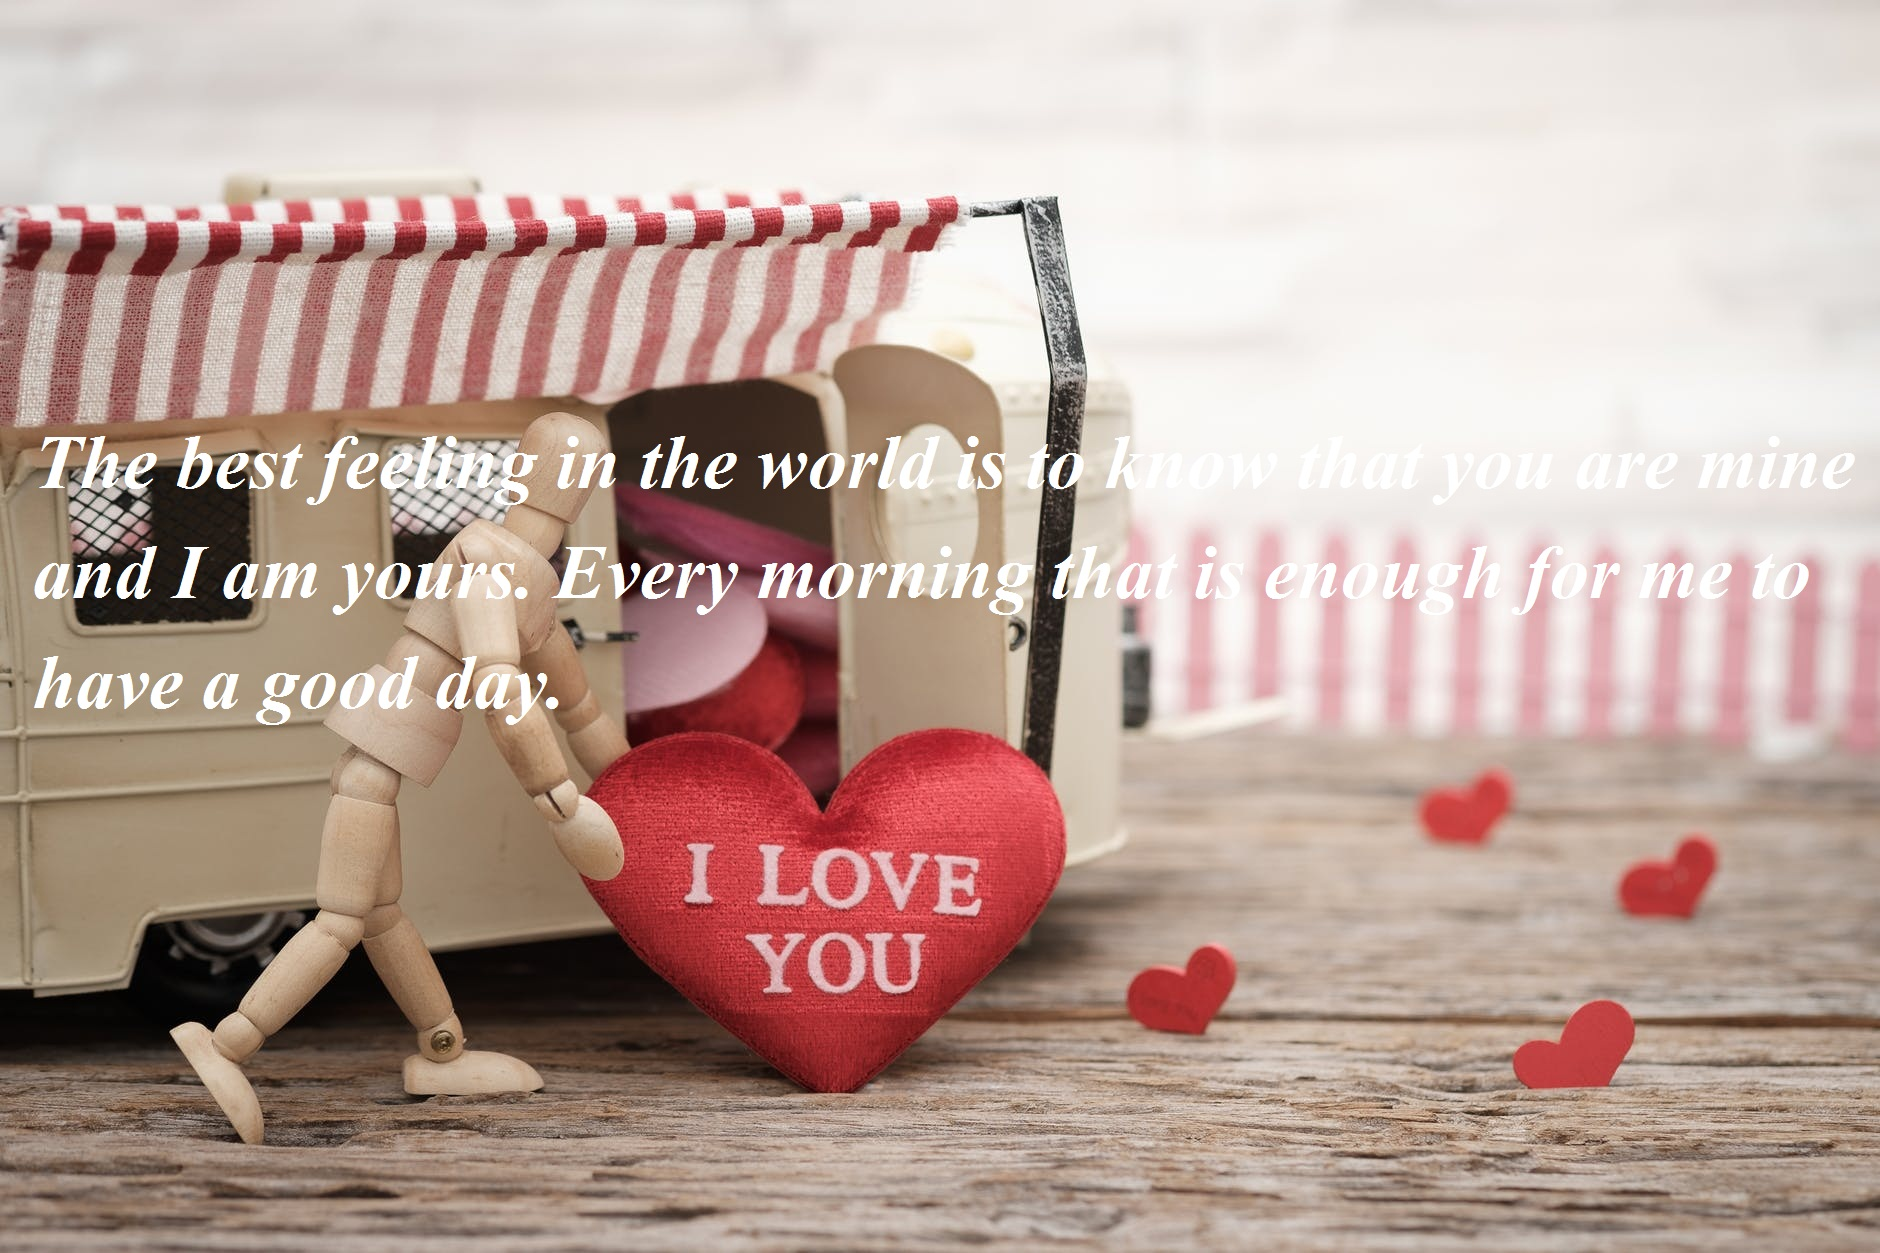 Have a Wonderful Day Quotes for Her